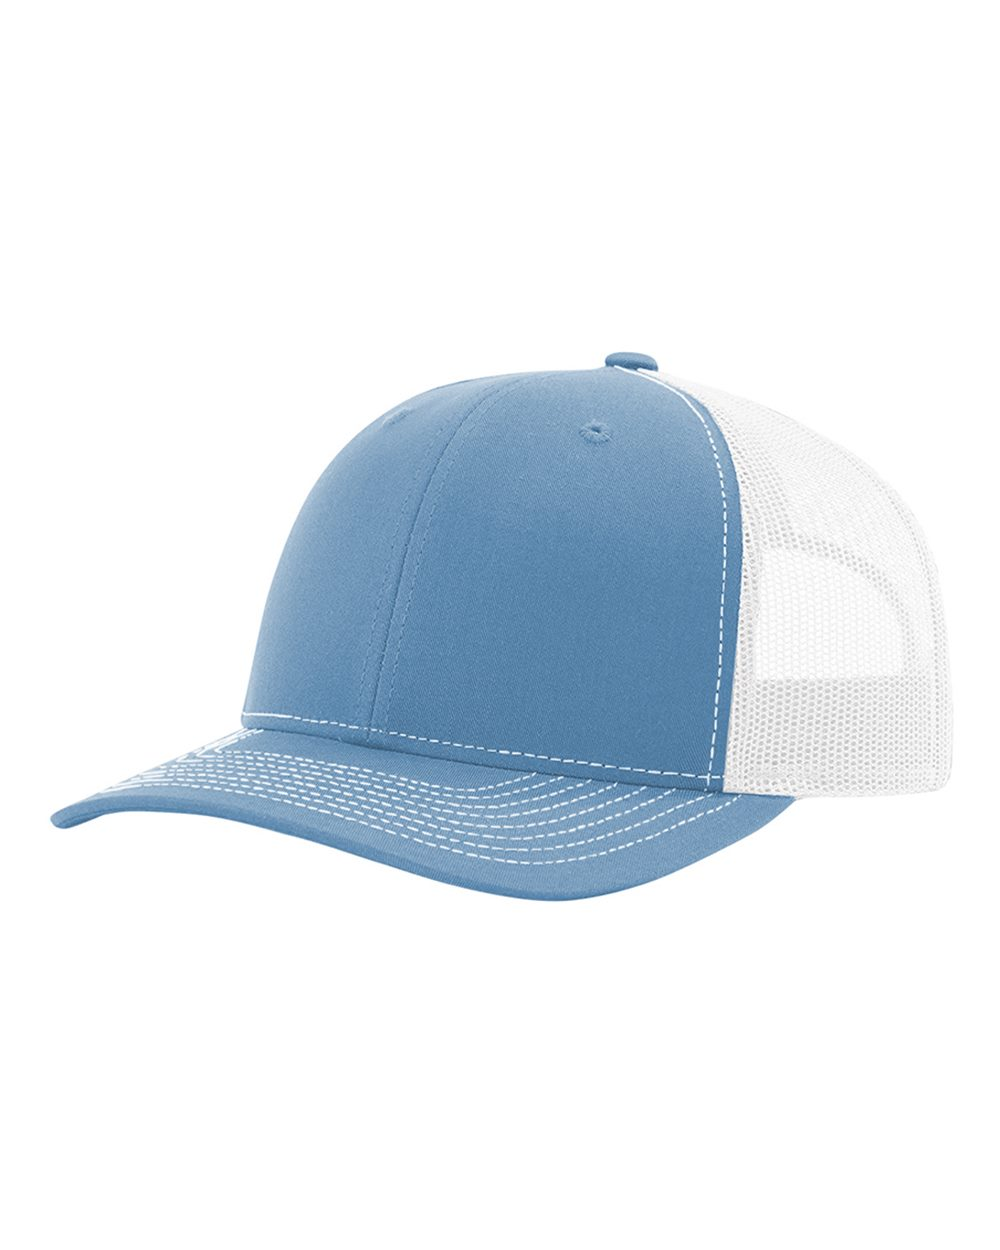 Colombia Blue/ White